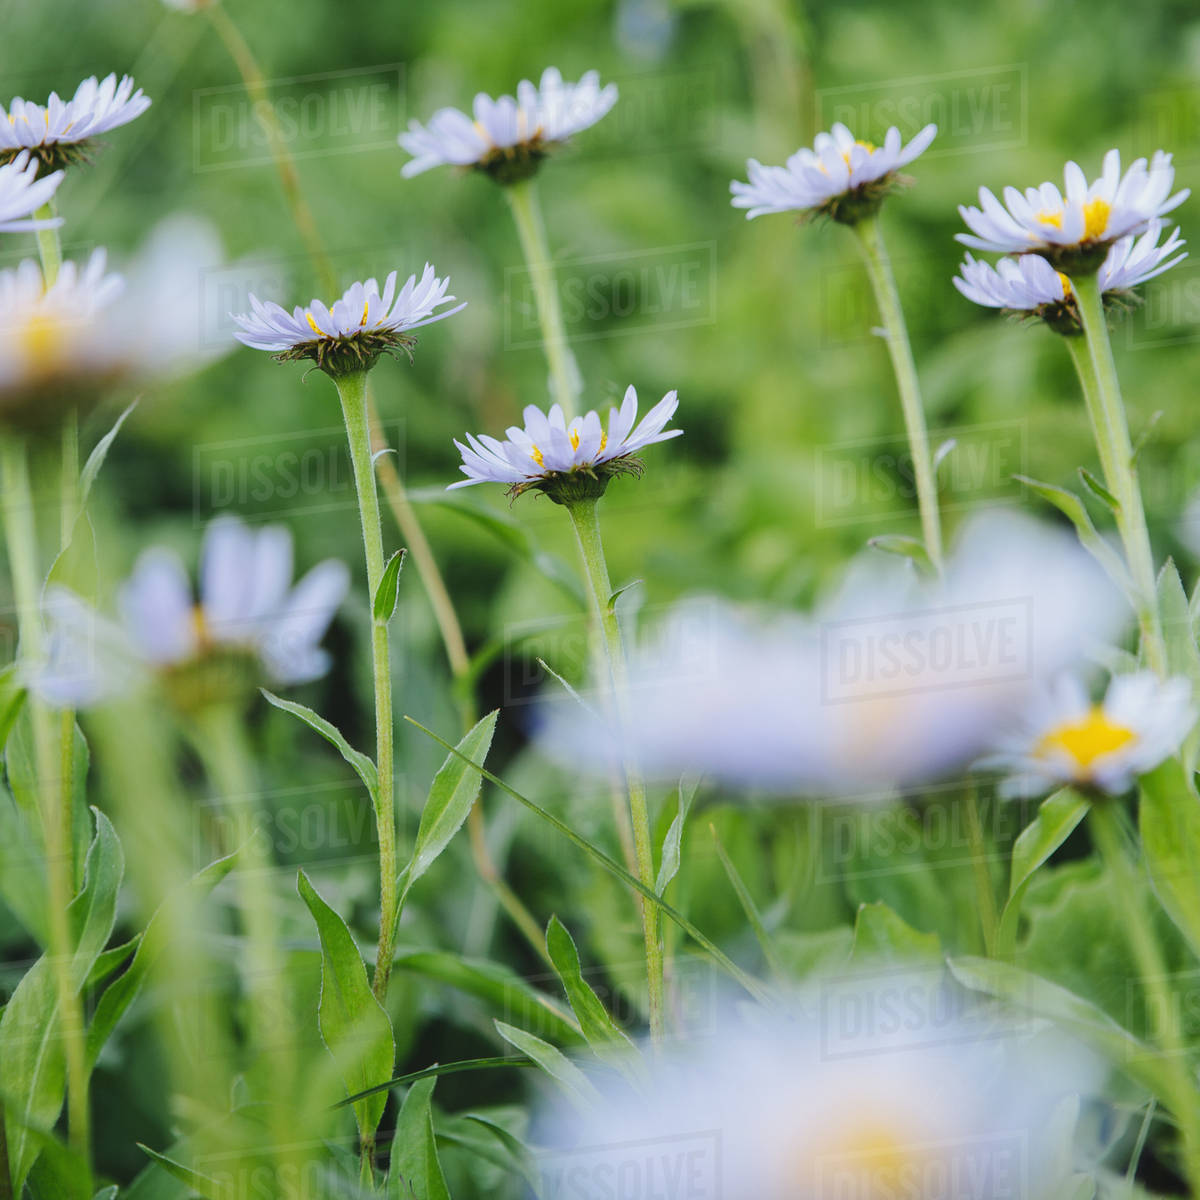 Alpine Asters Daisy Like Flowers In Lush Green Meadow At Mount